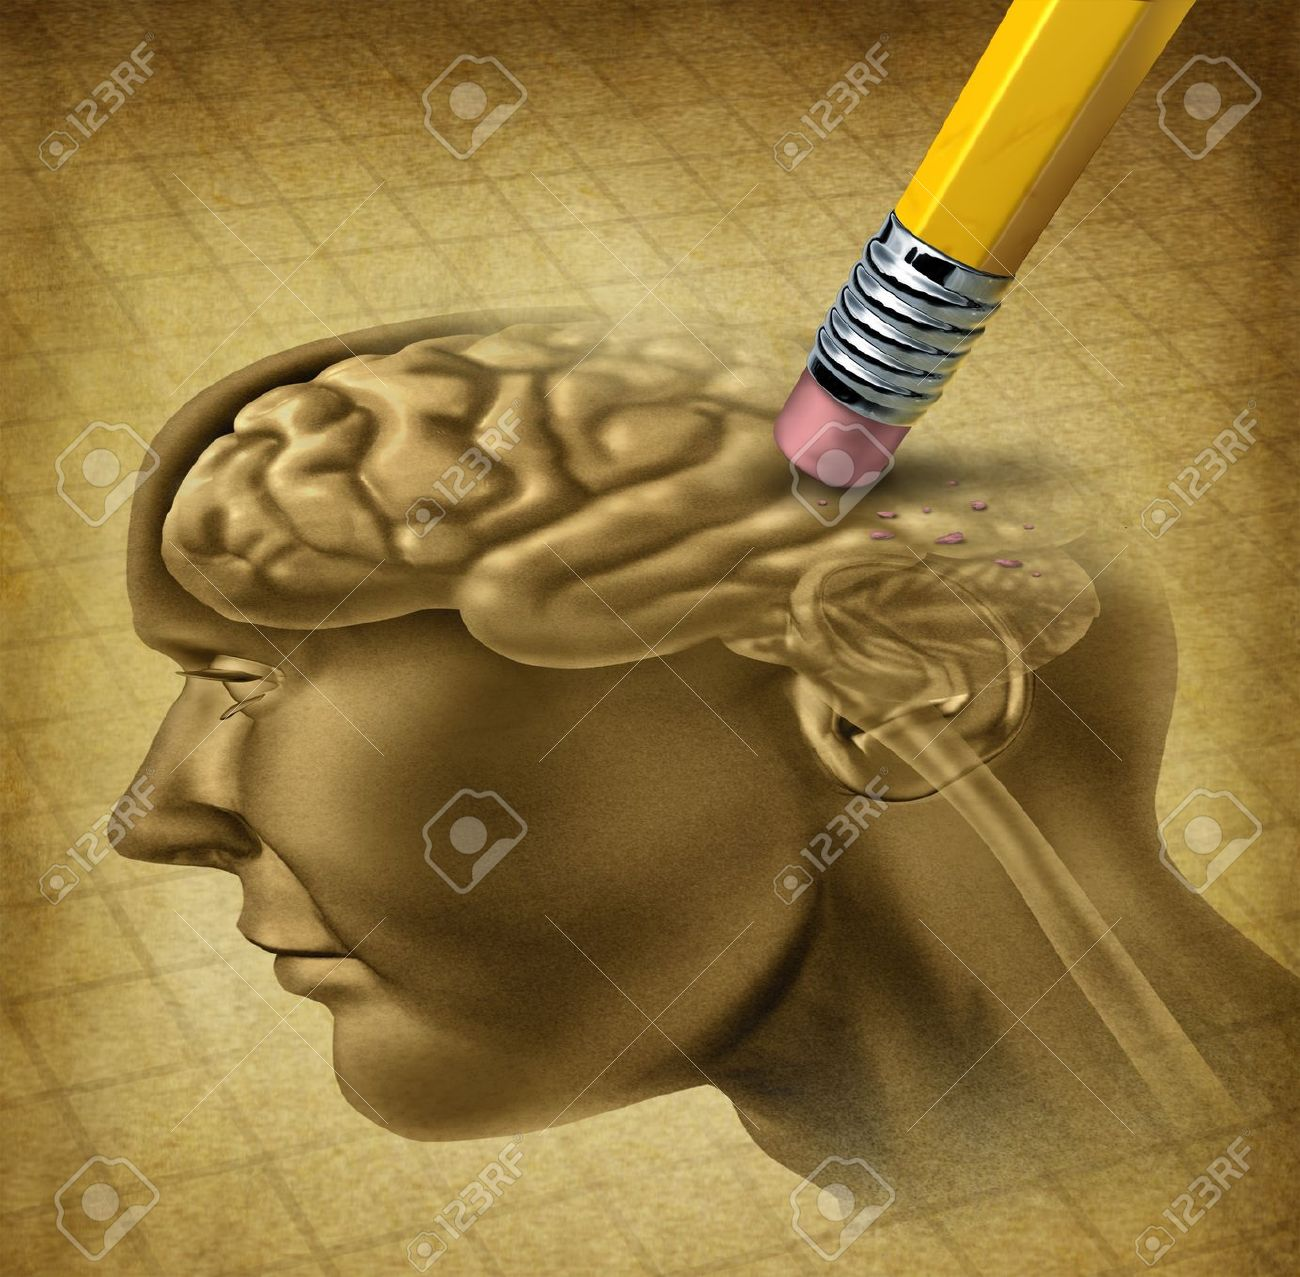 Dementia disease and a loss of brain function and losing memories as alzheimers as a medical health care symbol of neurology and mental problems with a pencil eraser removing the head anatomy on a grunge old parchment paper - 13325473